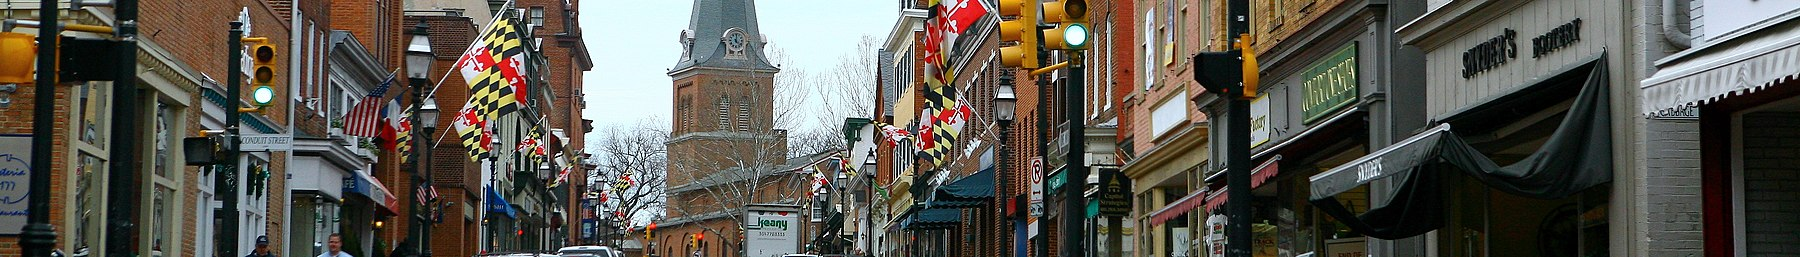 Some Annapolis commercial strip 1x7 cropped.jpg